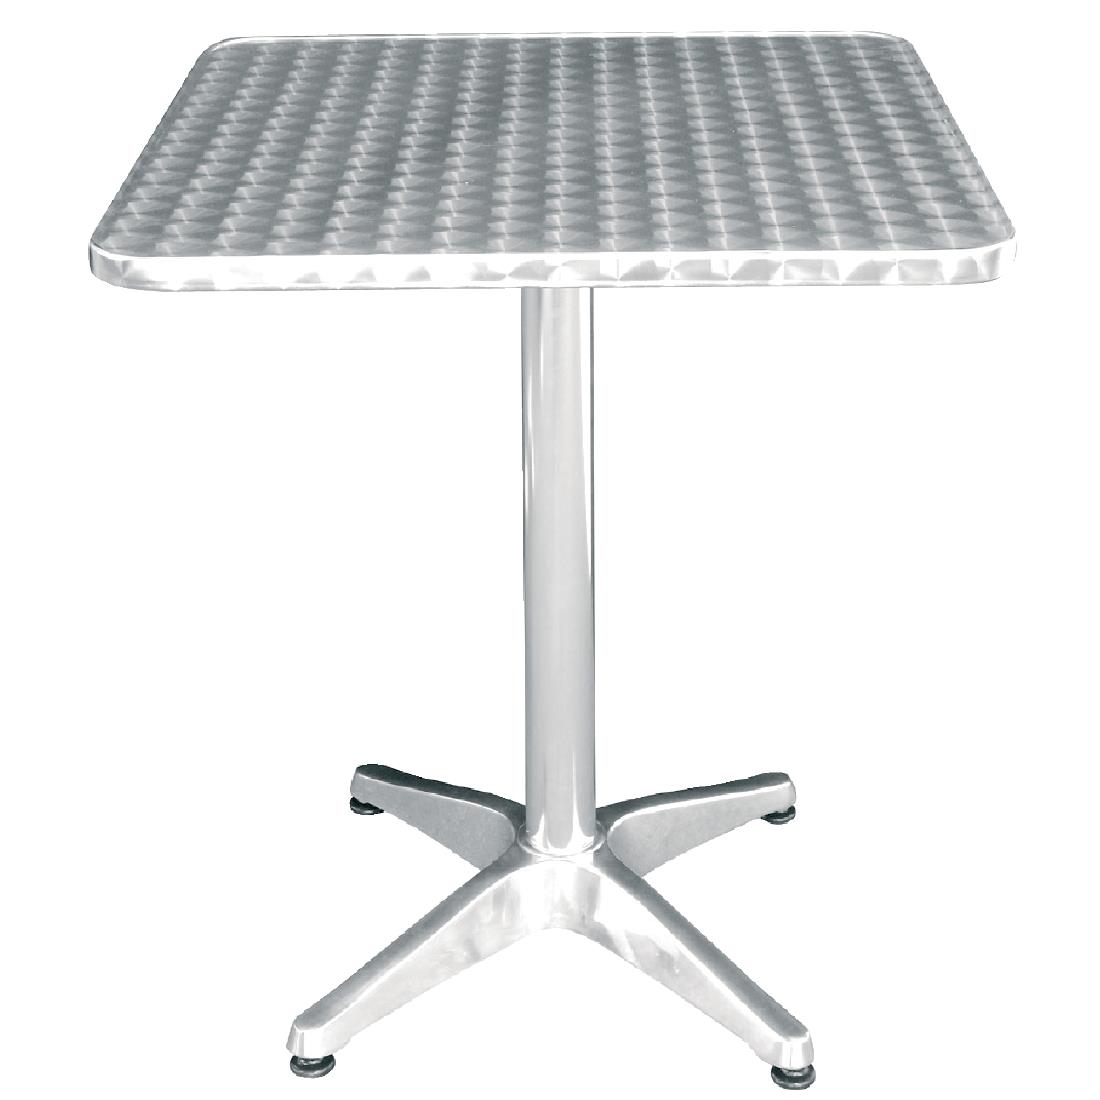 Exceptional Bolero Square Bistro Table Stainless Steel 600mm   U427   Buy .